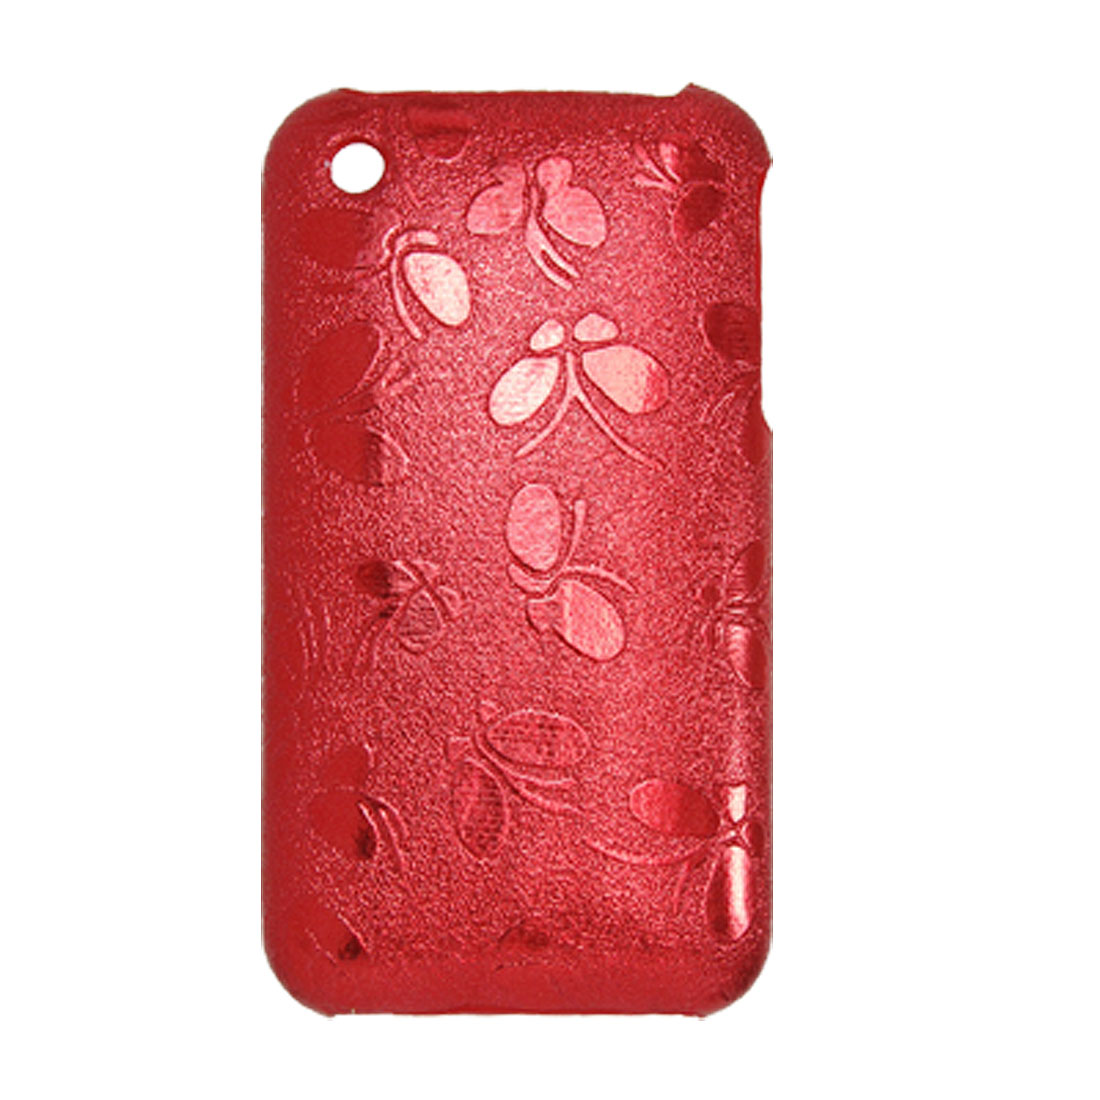 Red Plastic Butterfly Case + Screen Guard for iPhone 3G